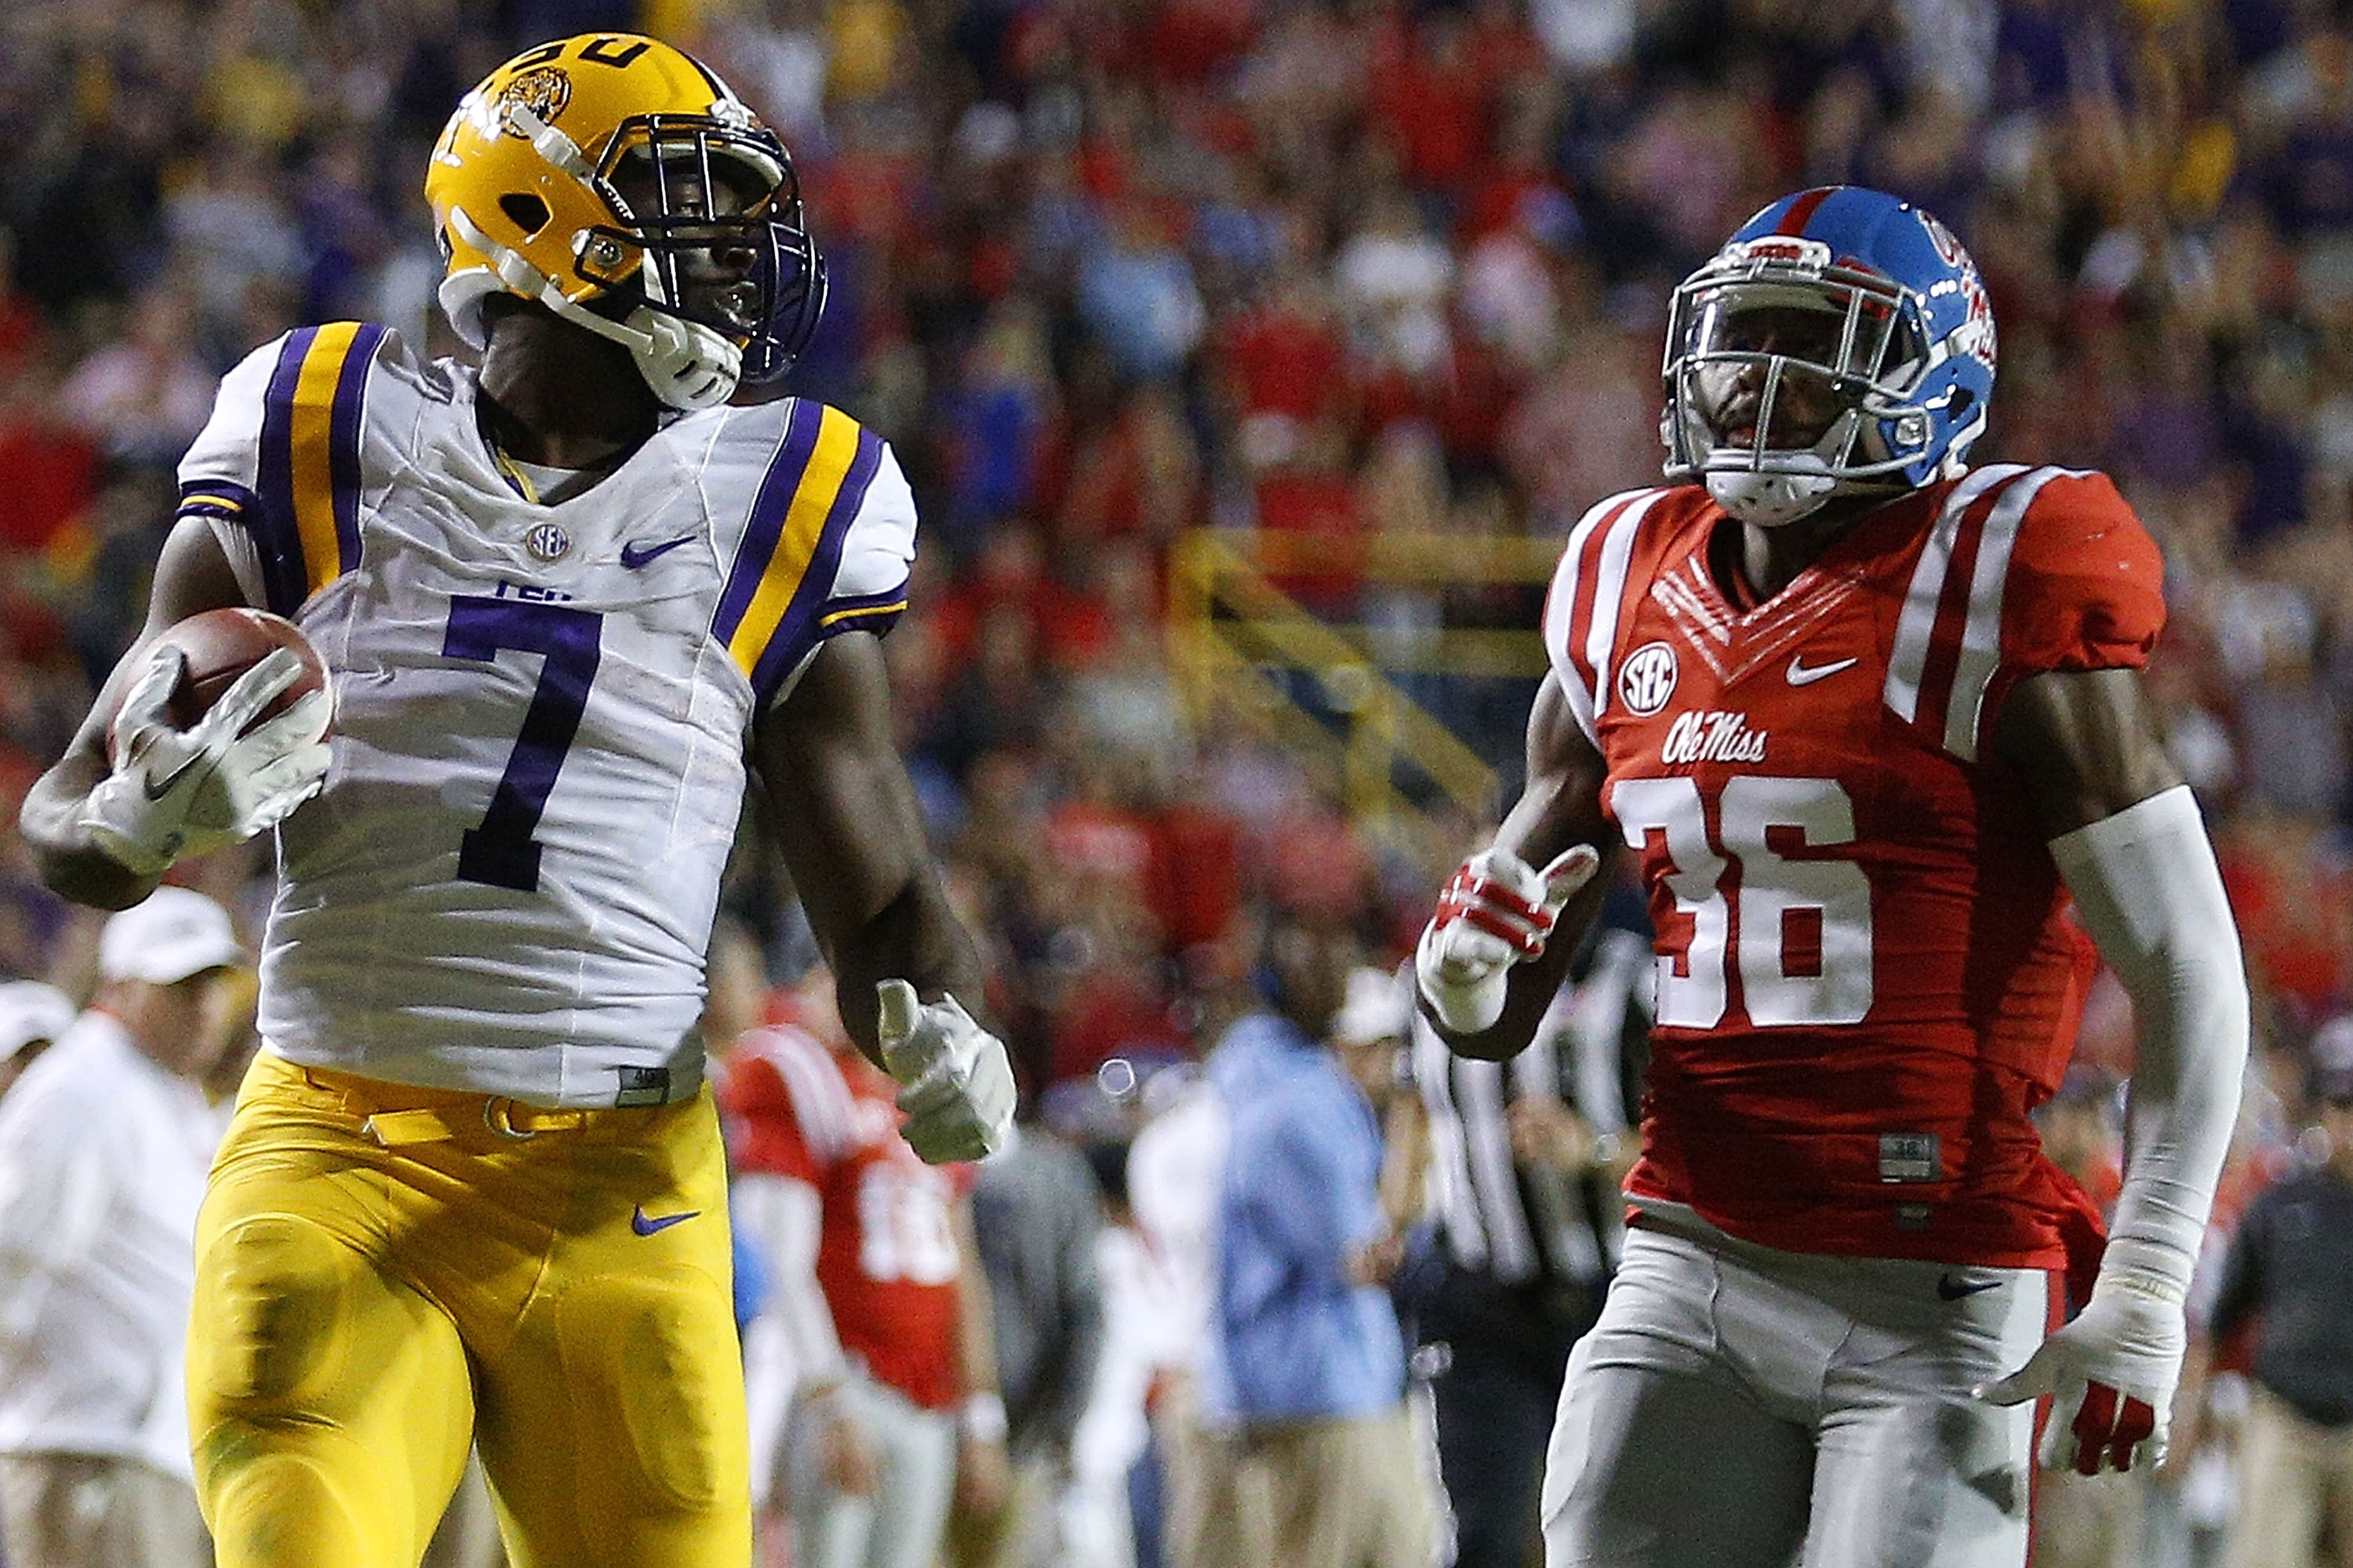 Leonard Fournette, left, of the LSU Tigers heads a strong class of running backs. (Photo by Jonathan Bachman/Getty Images)